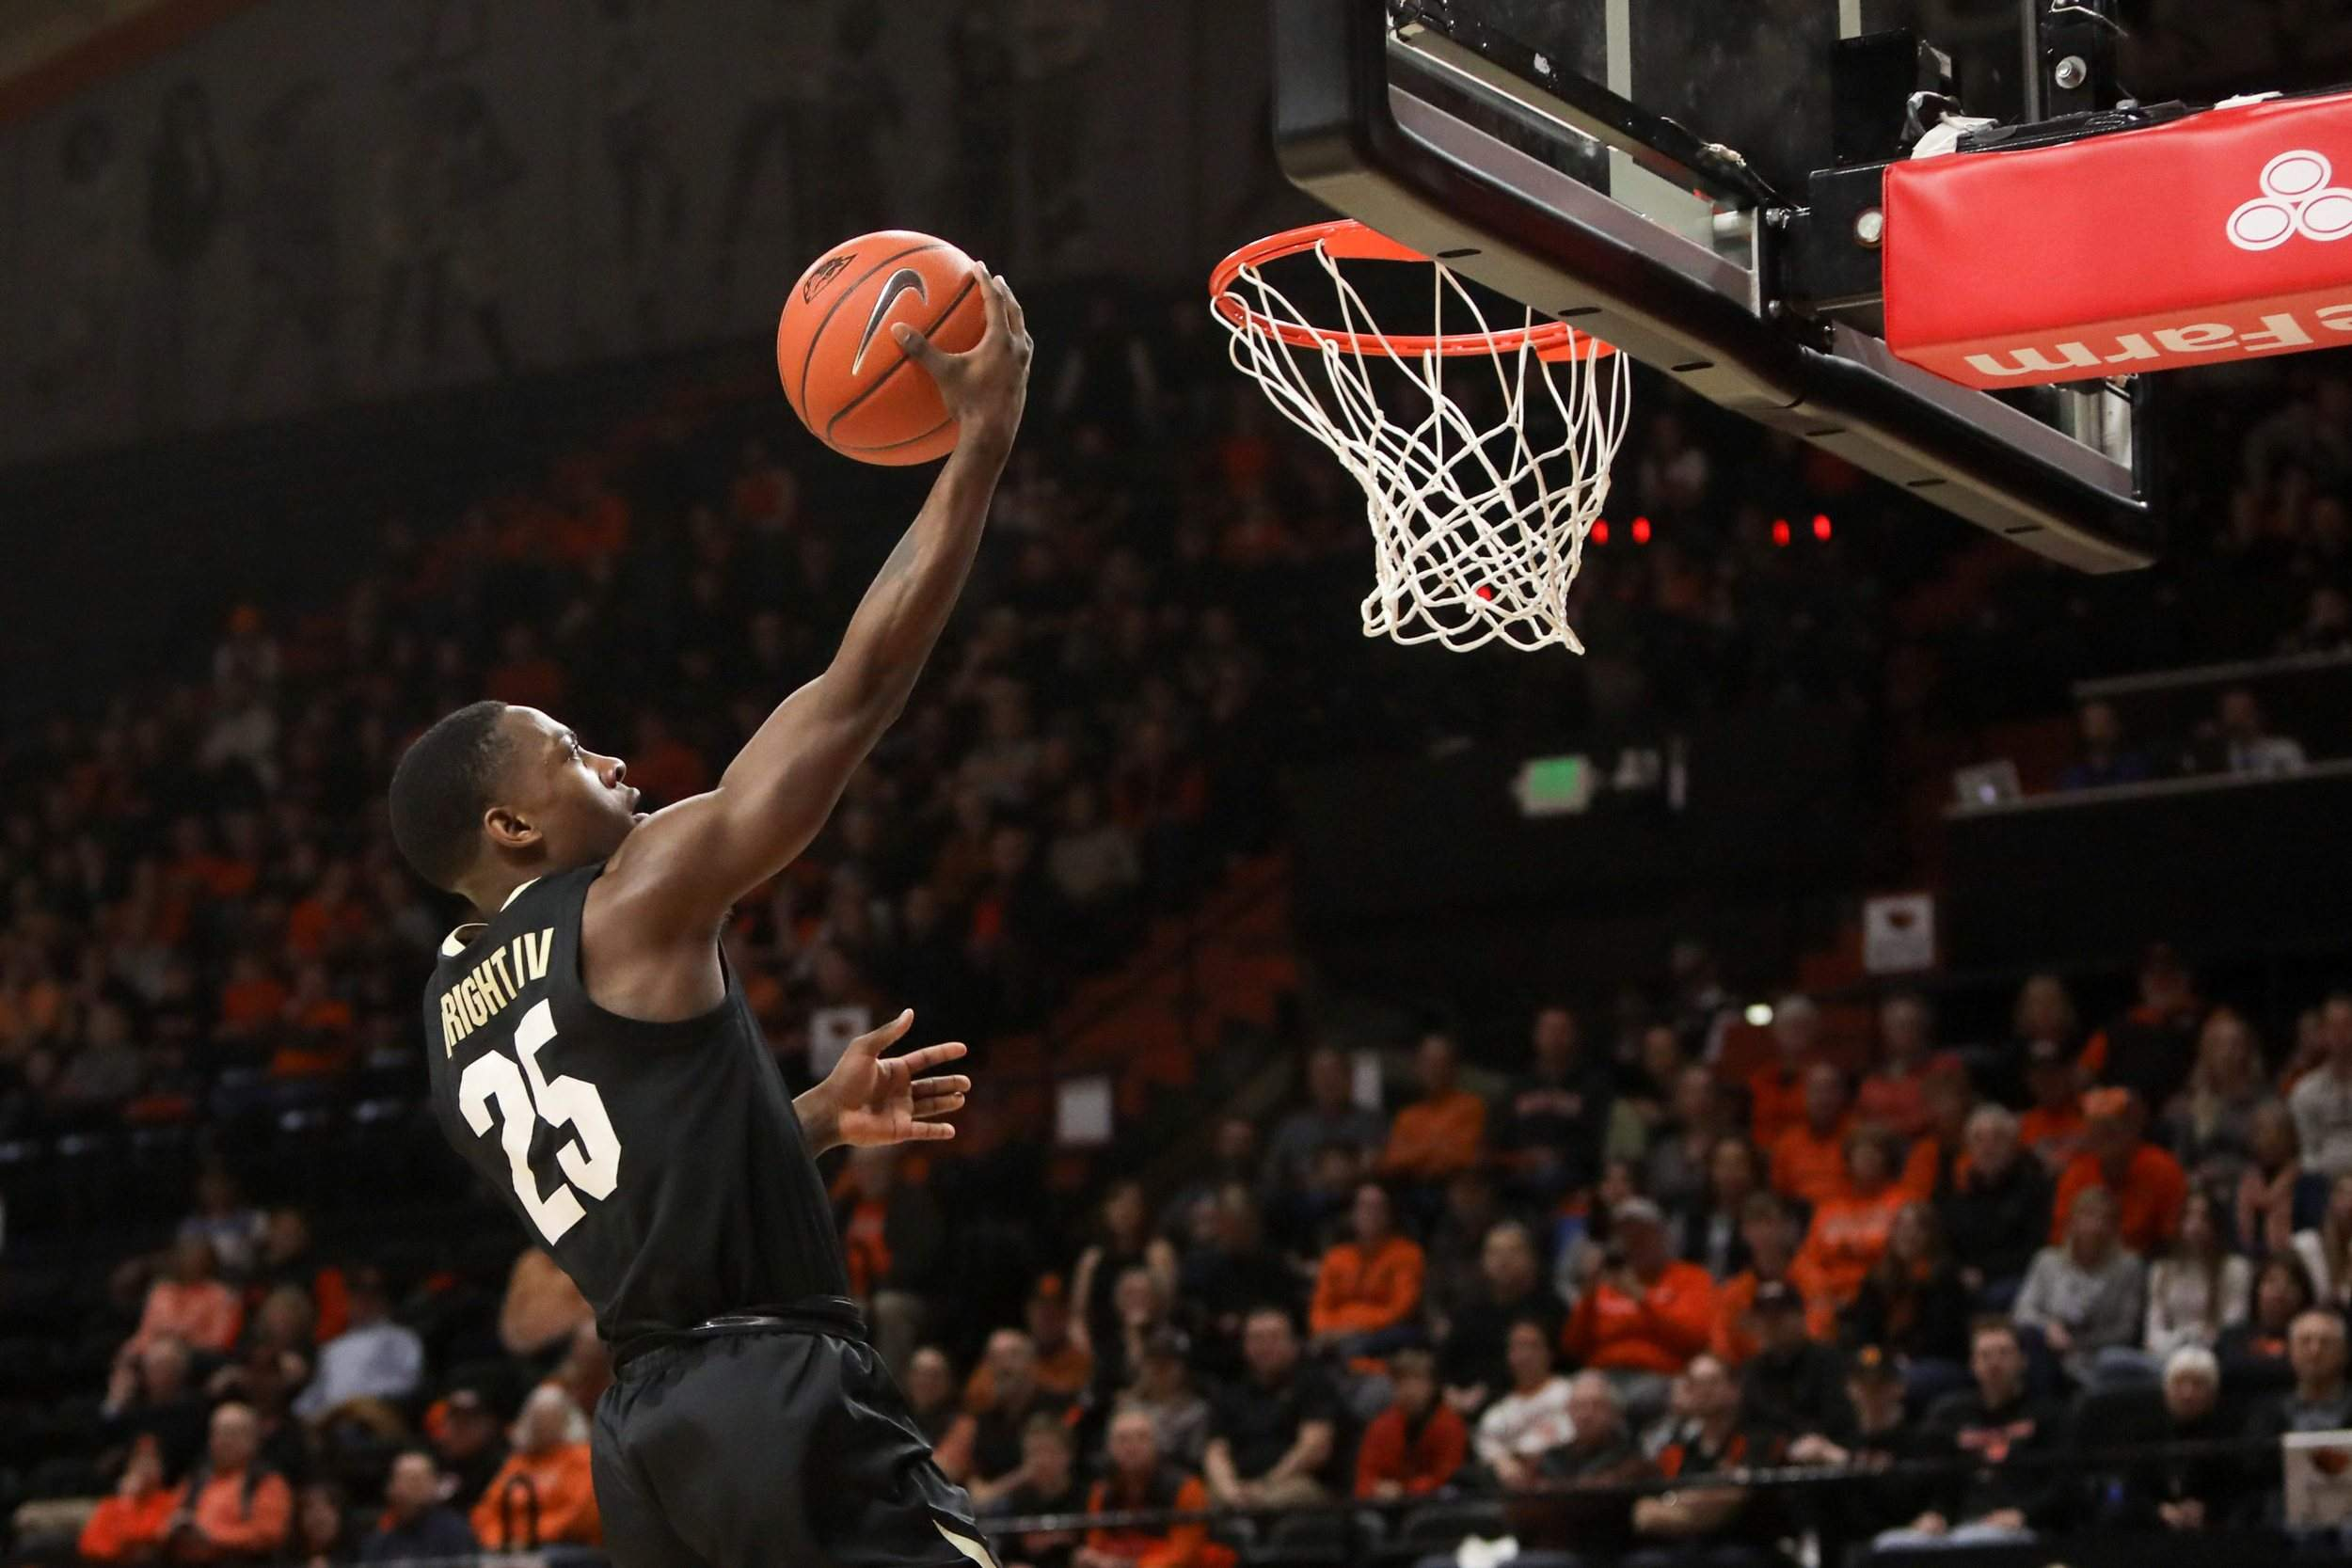 No. 17 OR rallies to beat No. 16 Colorado 68-60